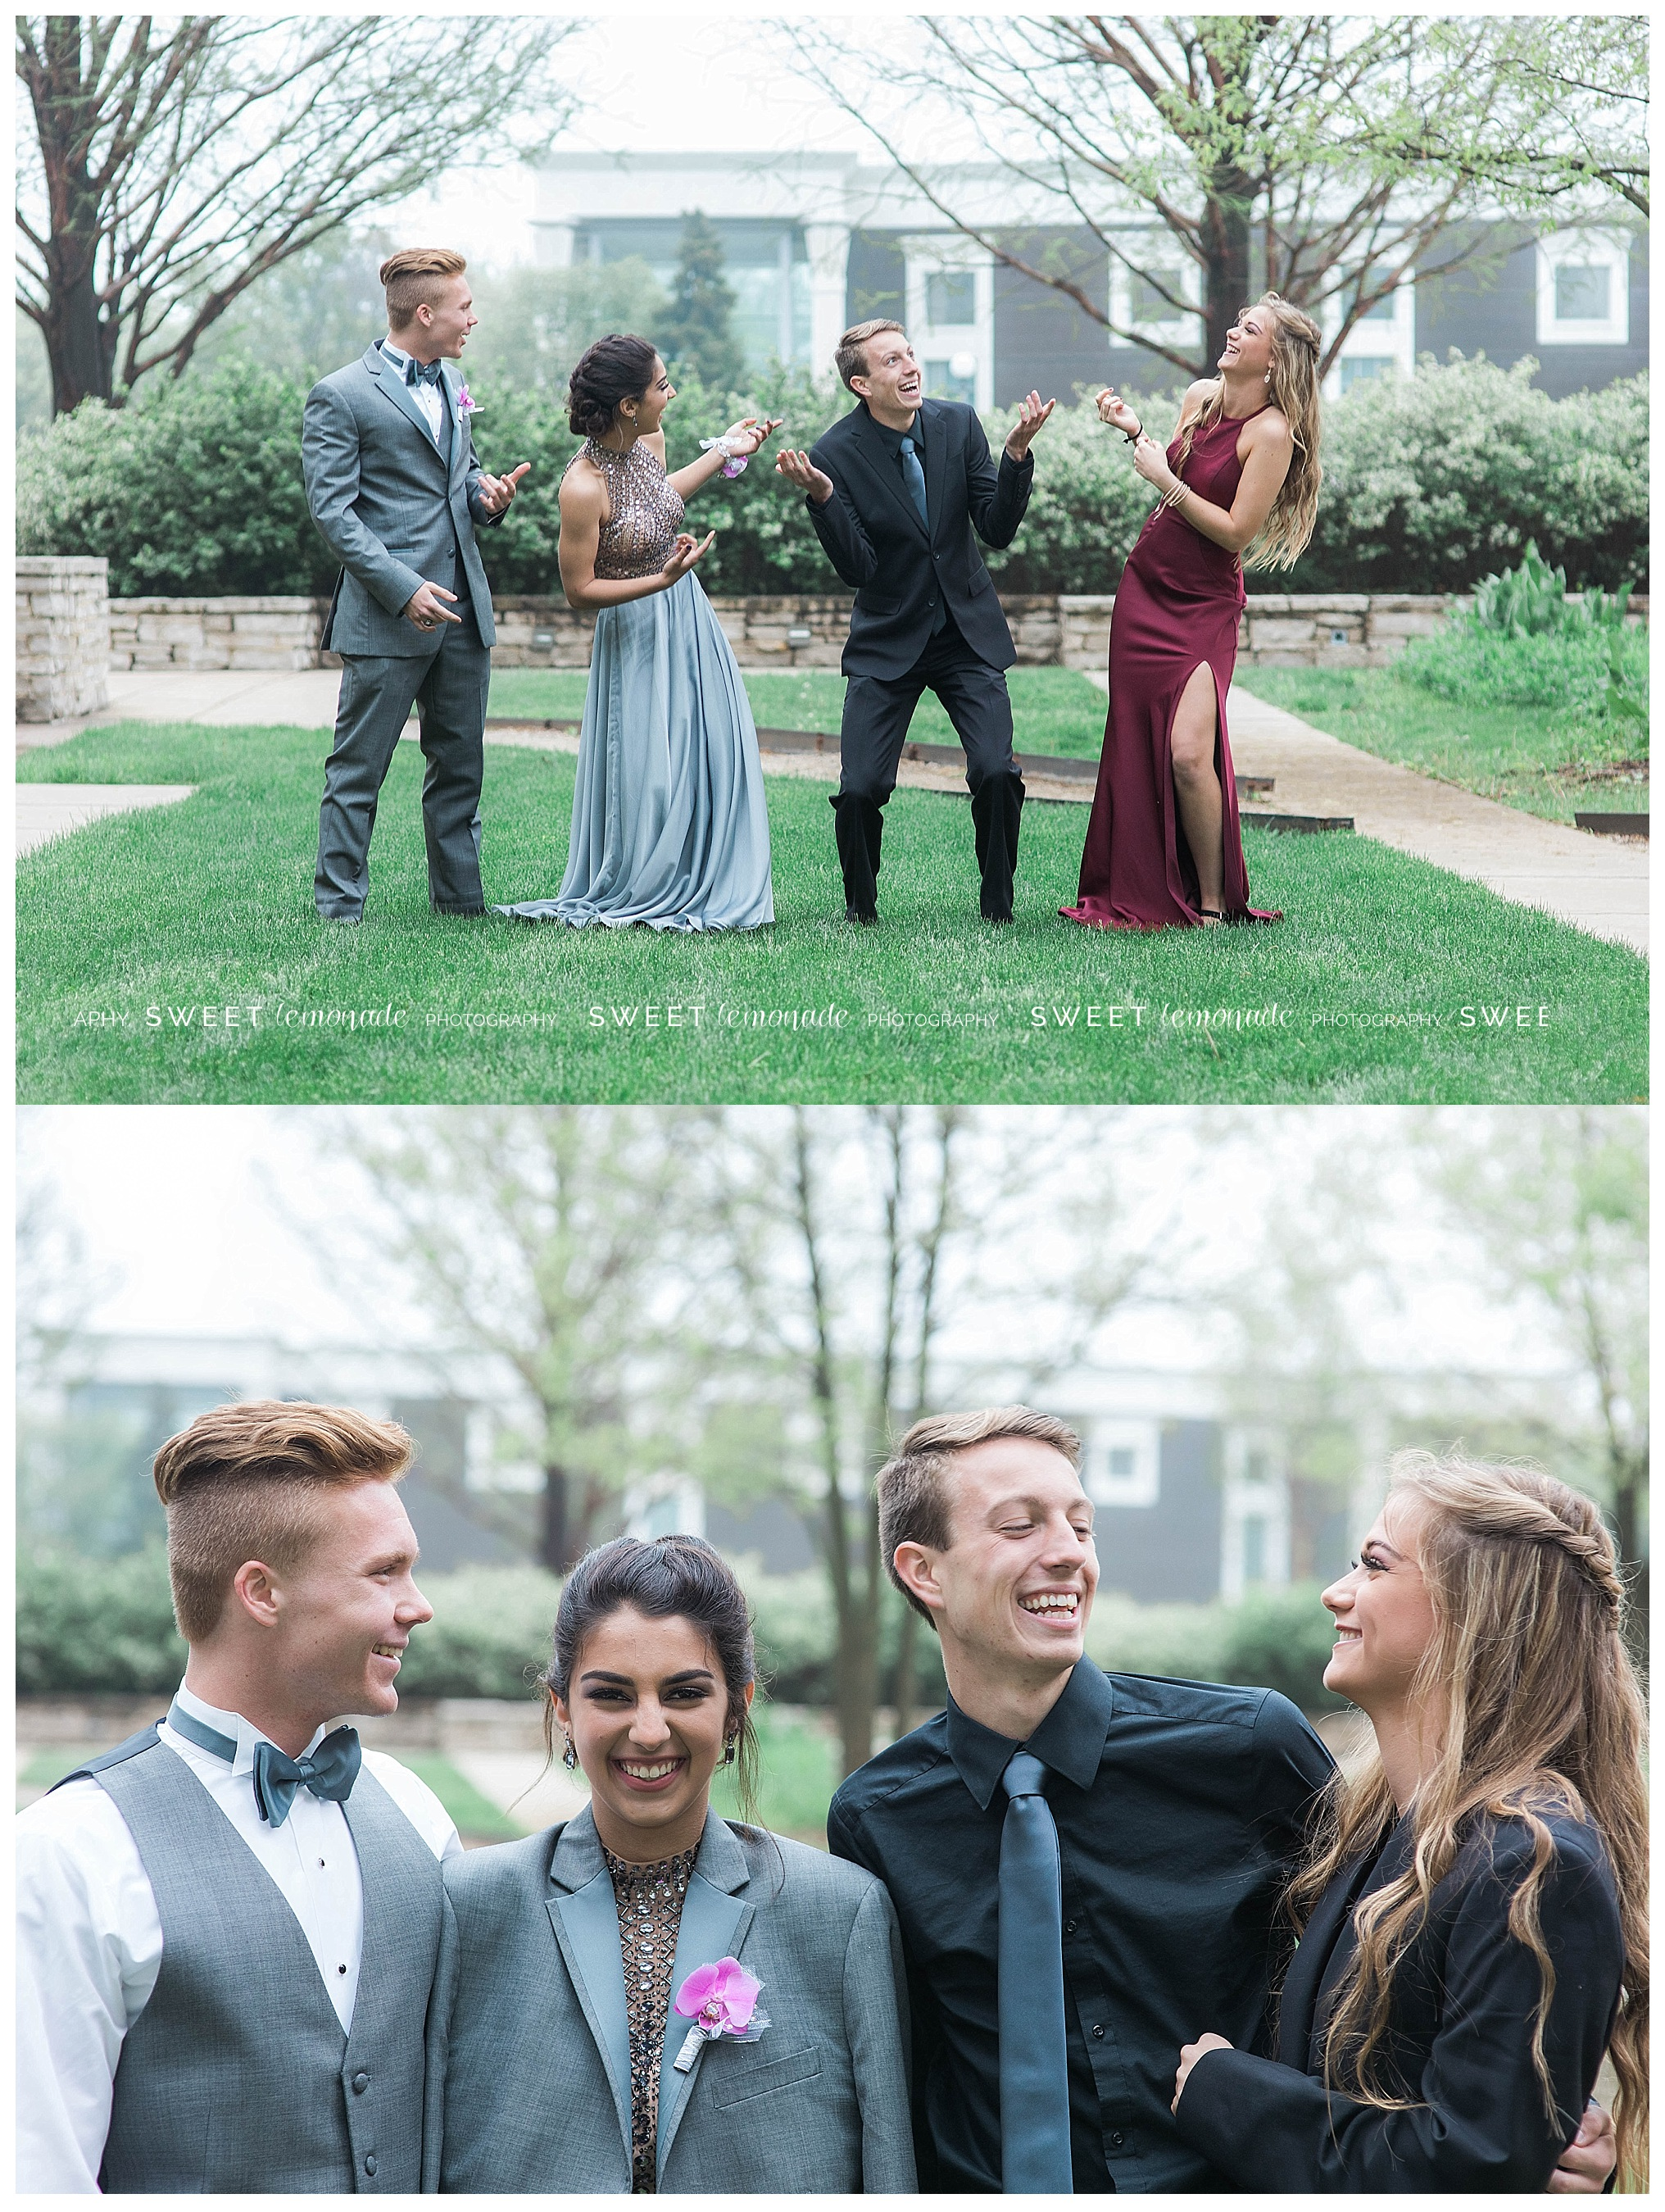 champaign-county-mahomet-illinois-senior-photographer-sweet-lemonade-photography-prom-photographs_1054.jpg